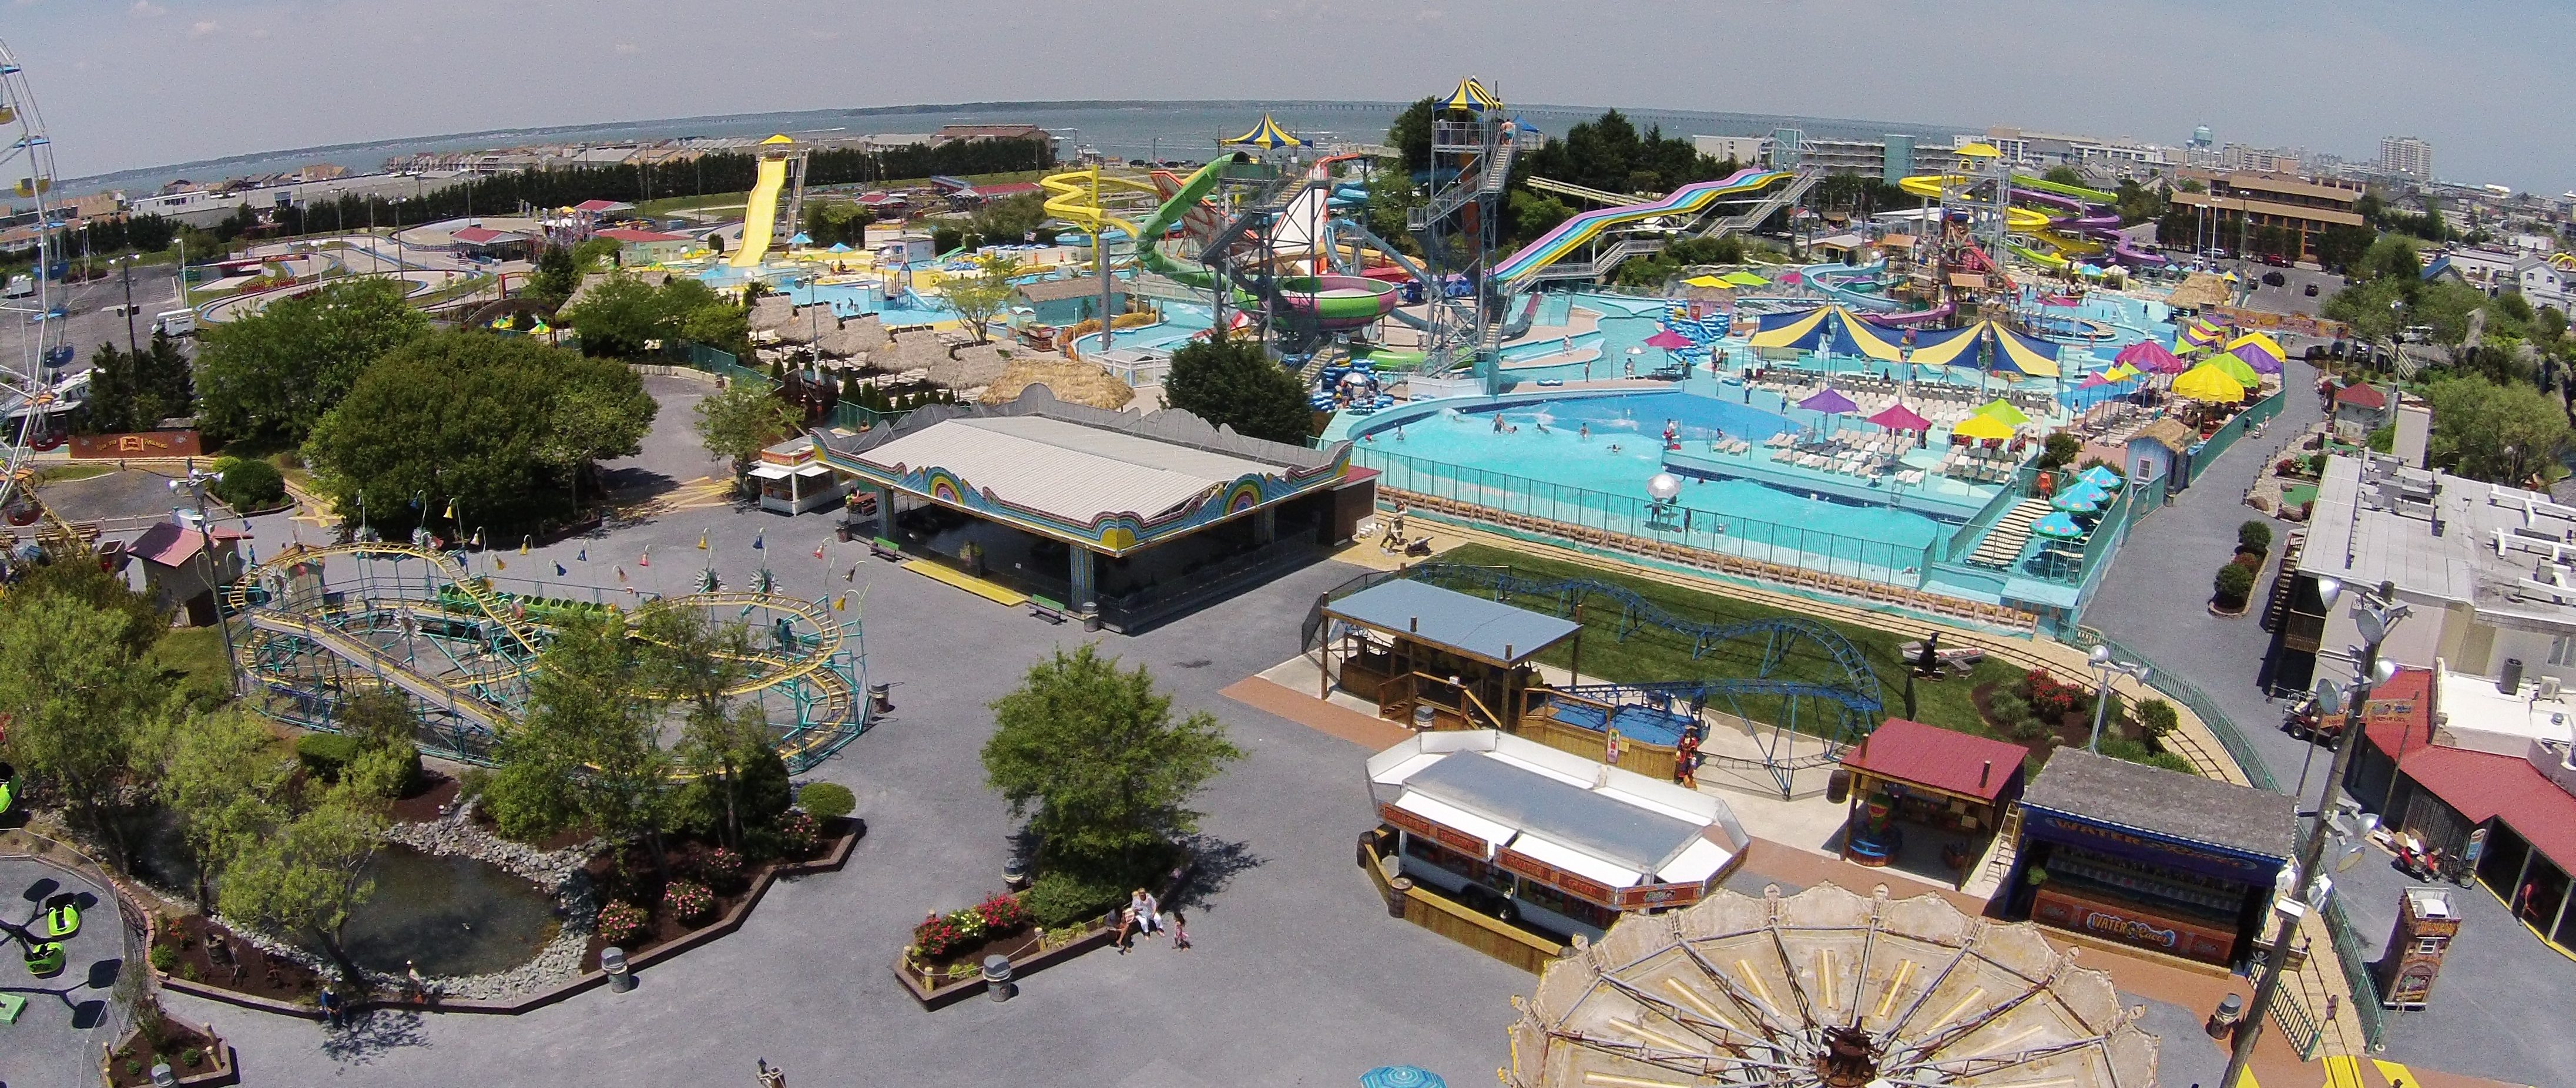 aerial view of the jolly rogers amusement park